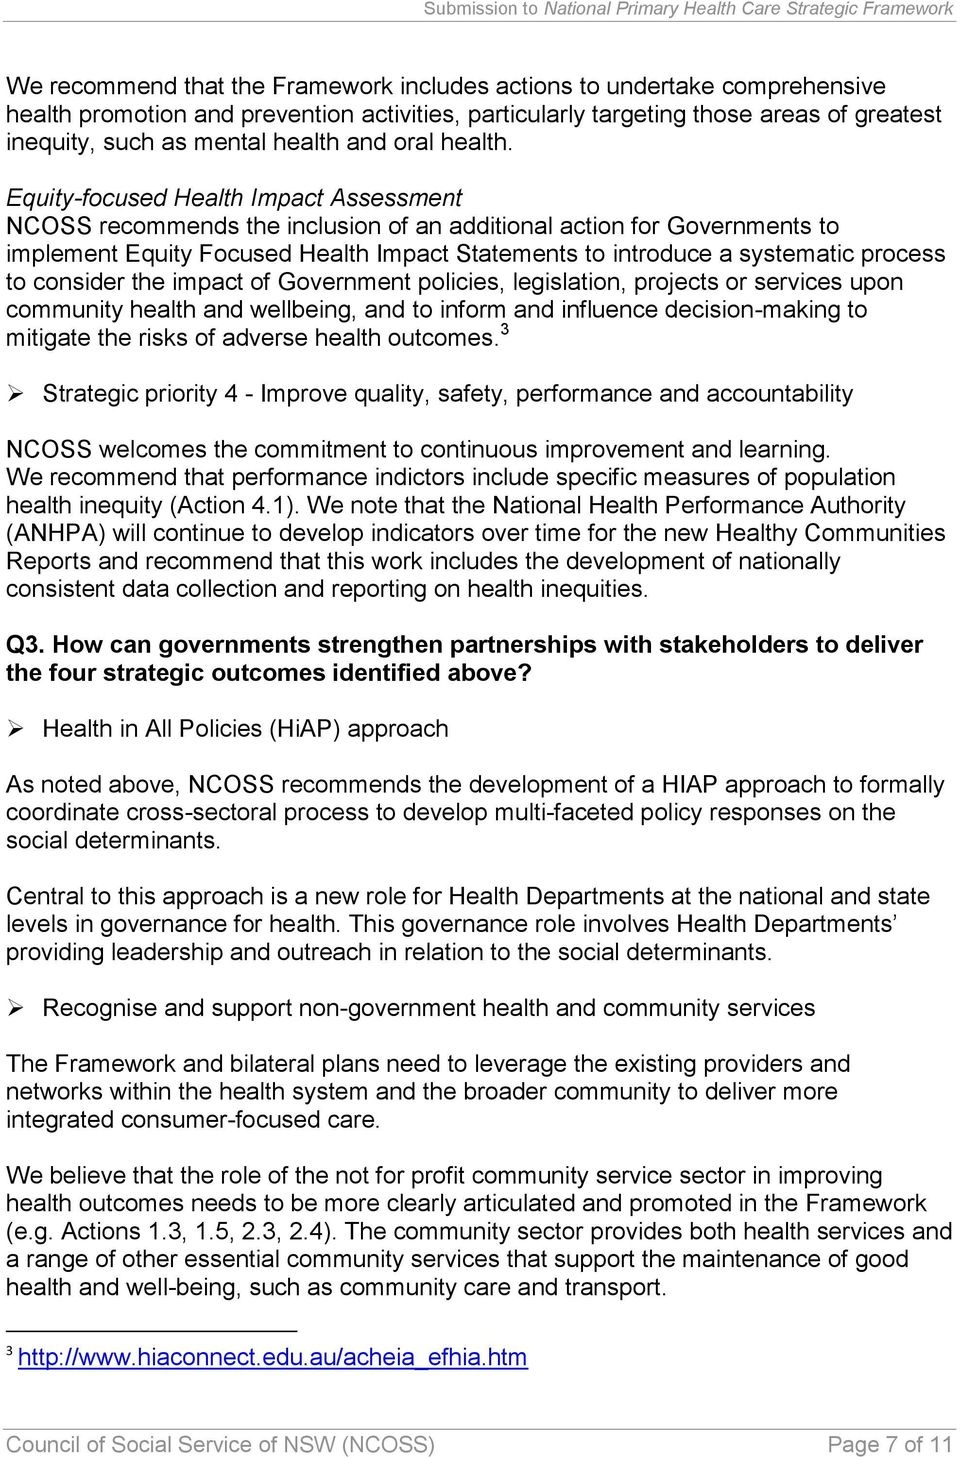 Equity-focused Health Impact Assessment NCOSS recommends the inclusion of an additional action for Governments to implement Equity Focused Health Impact Statements to introduce a systematic process